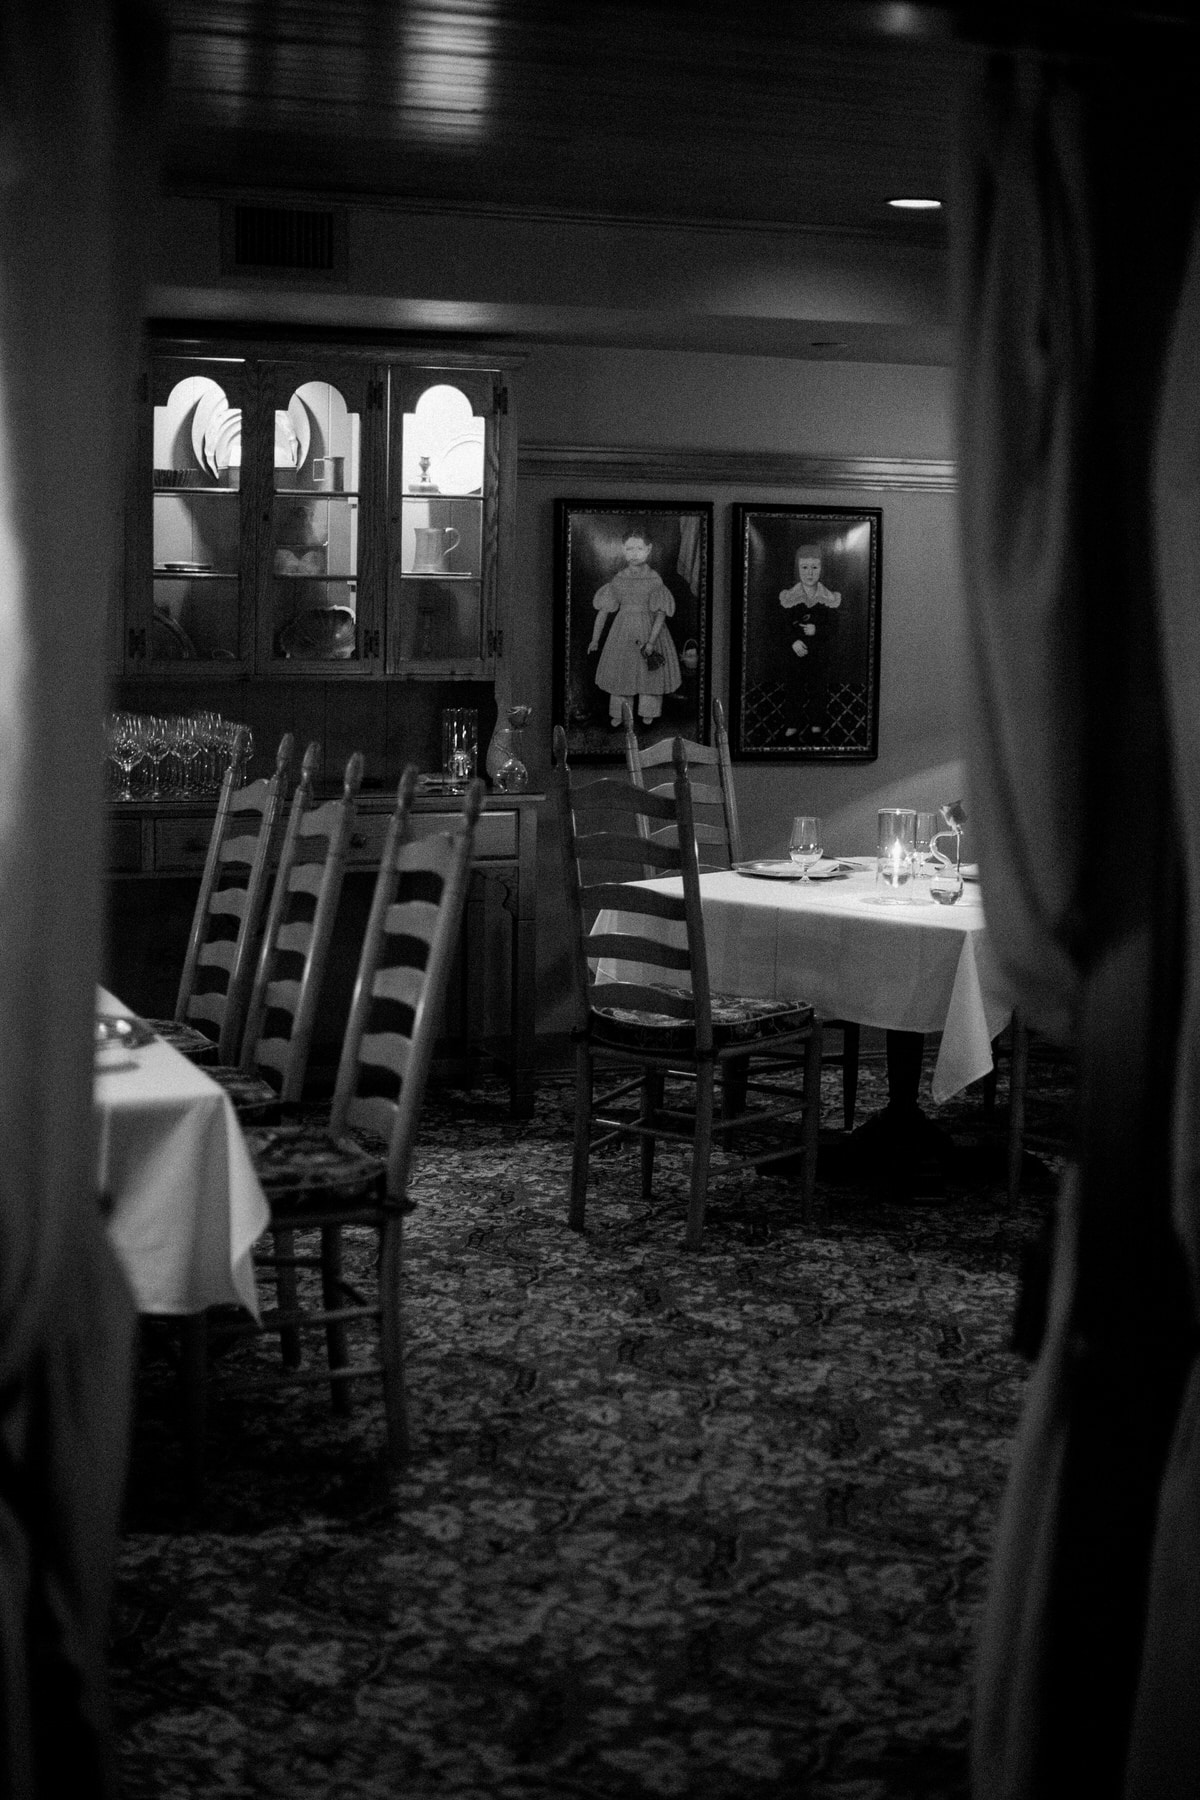 Immigrant-Room-Restaurant-American-Club-Kohler-Wisconsin-black-and-white-fine-art-photography-by-Studio-L-photographer-Laura-Schneider-_6423